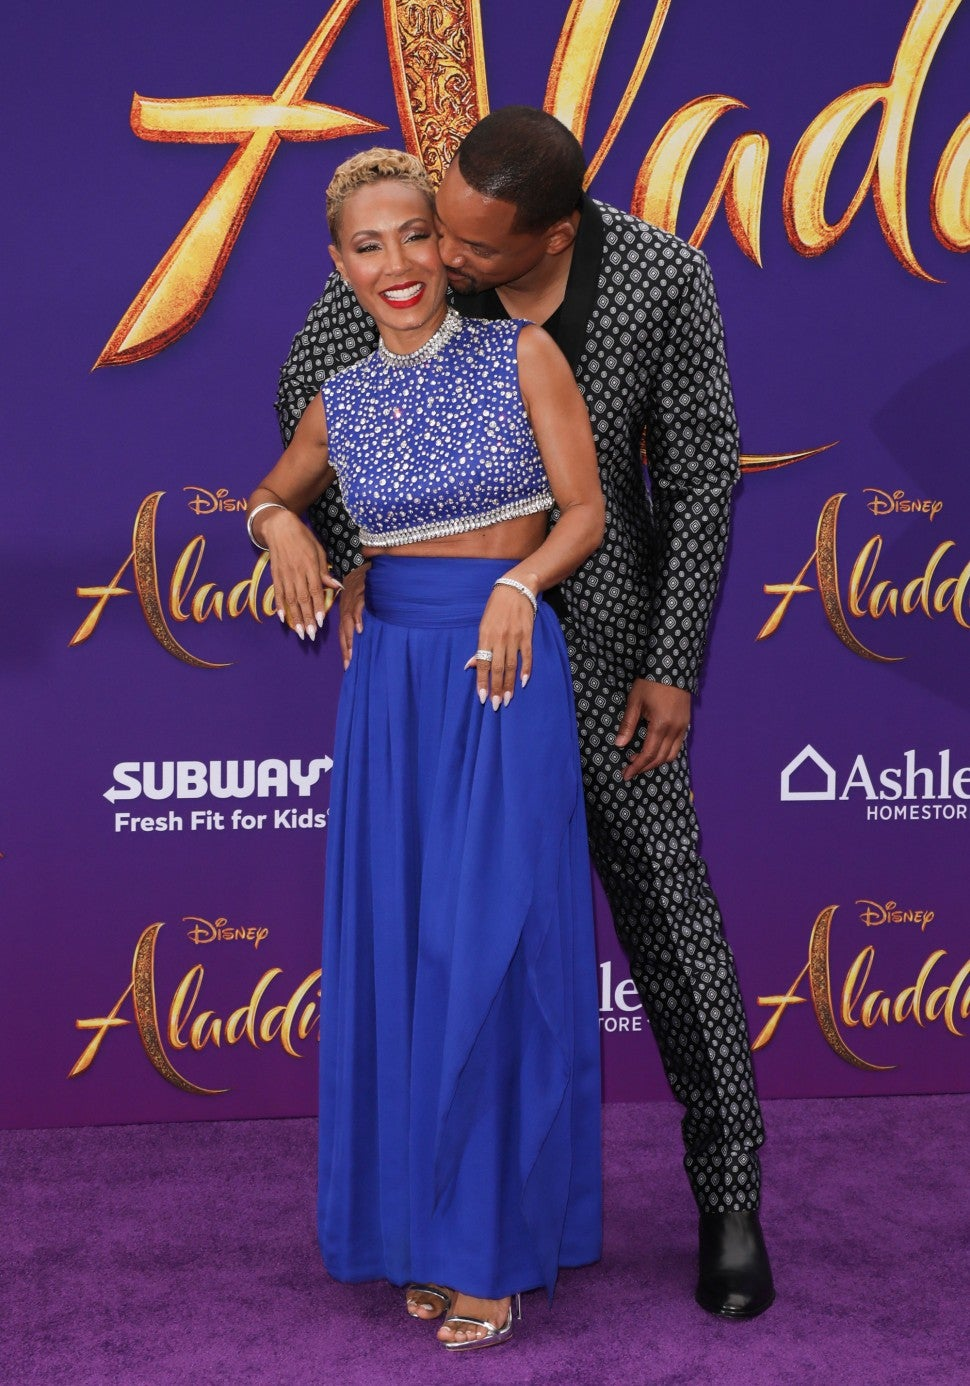 Jada Pinkett Smith and Will Smith at Aladdin premiere in hollywood